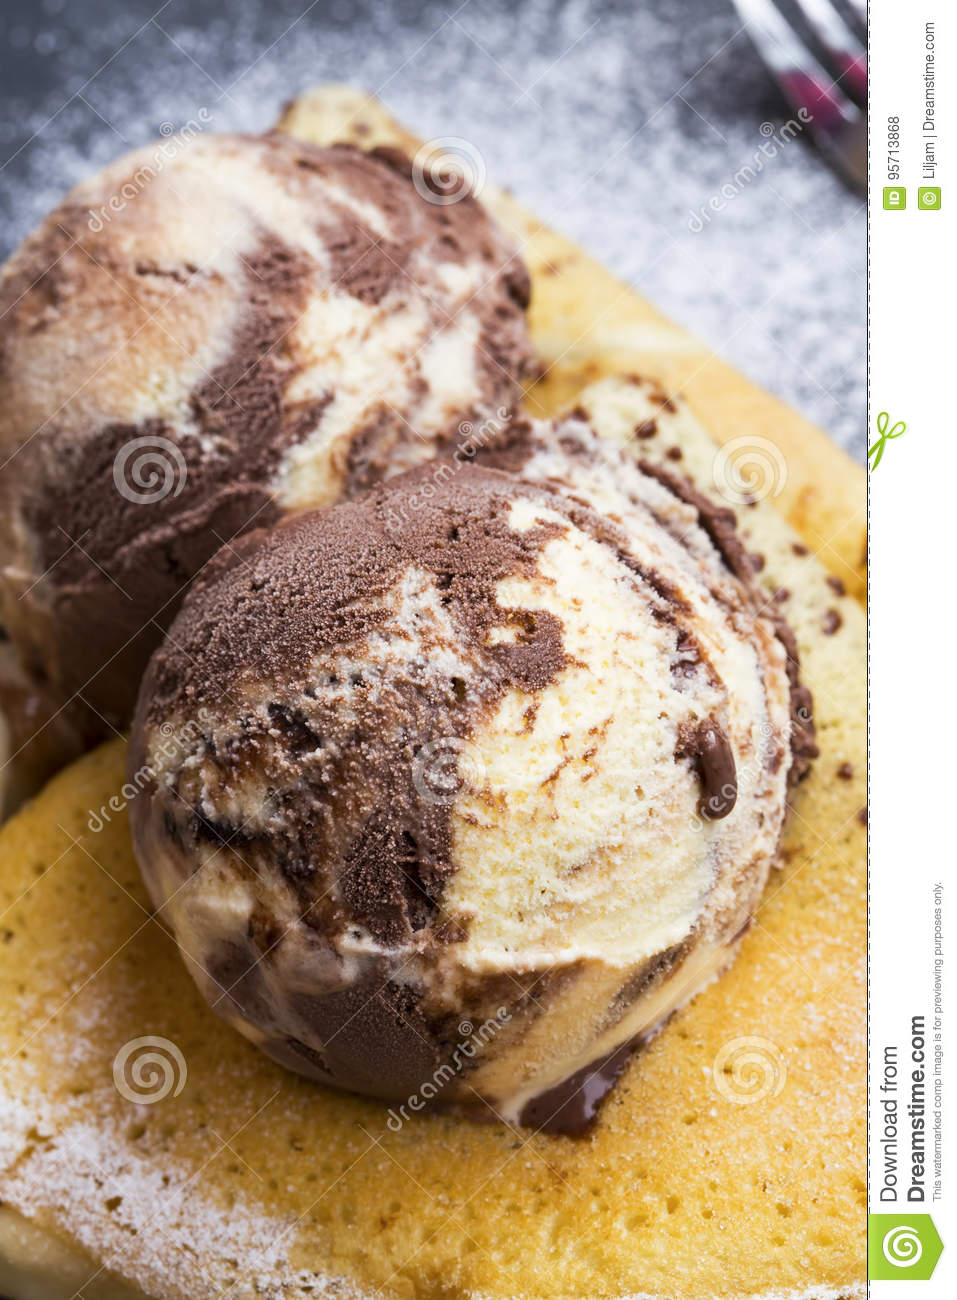 Ice Cream Scoops With Chocolate And Vanilla On Top Of Crepes T Asty Tasty Dessert